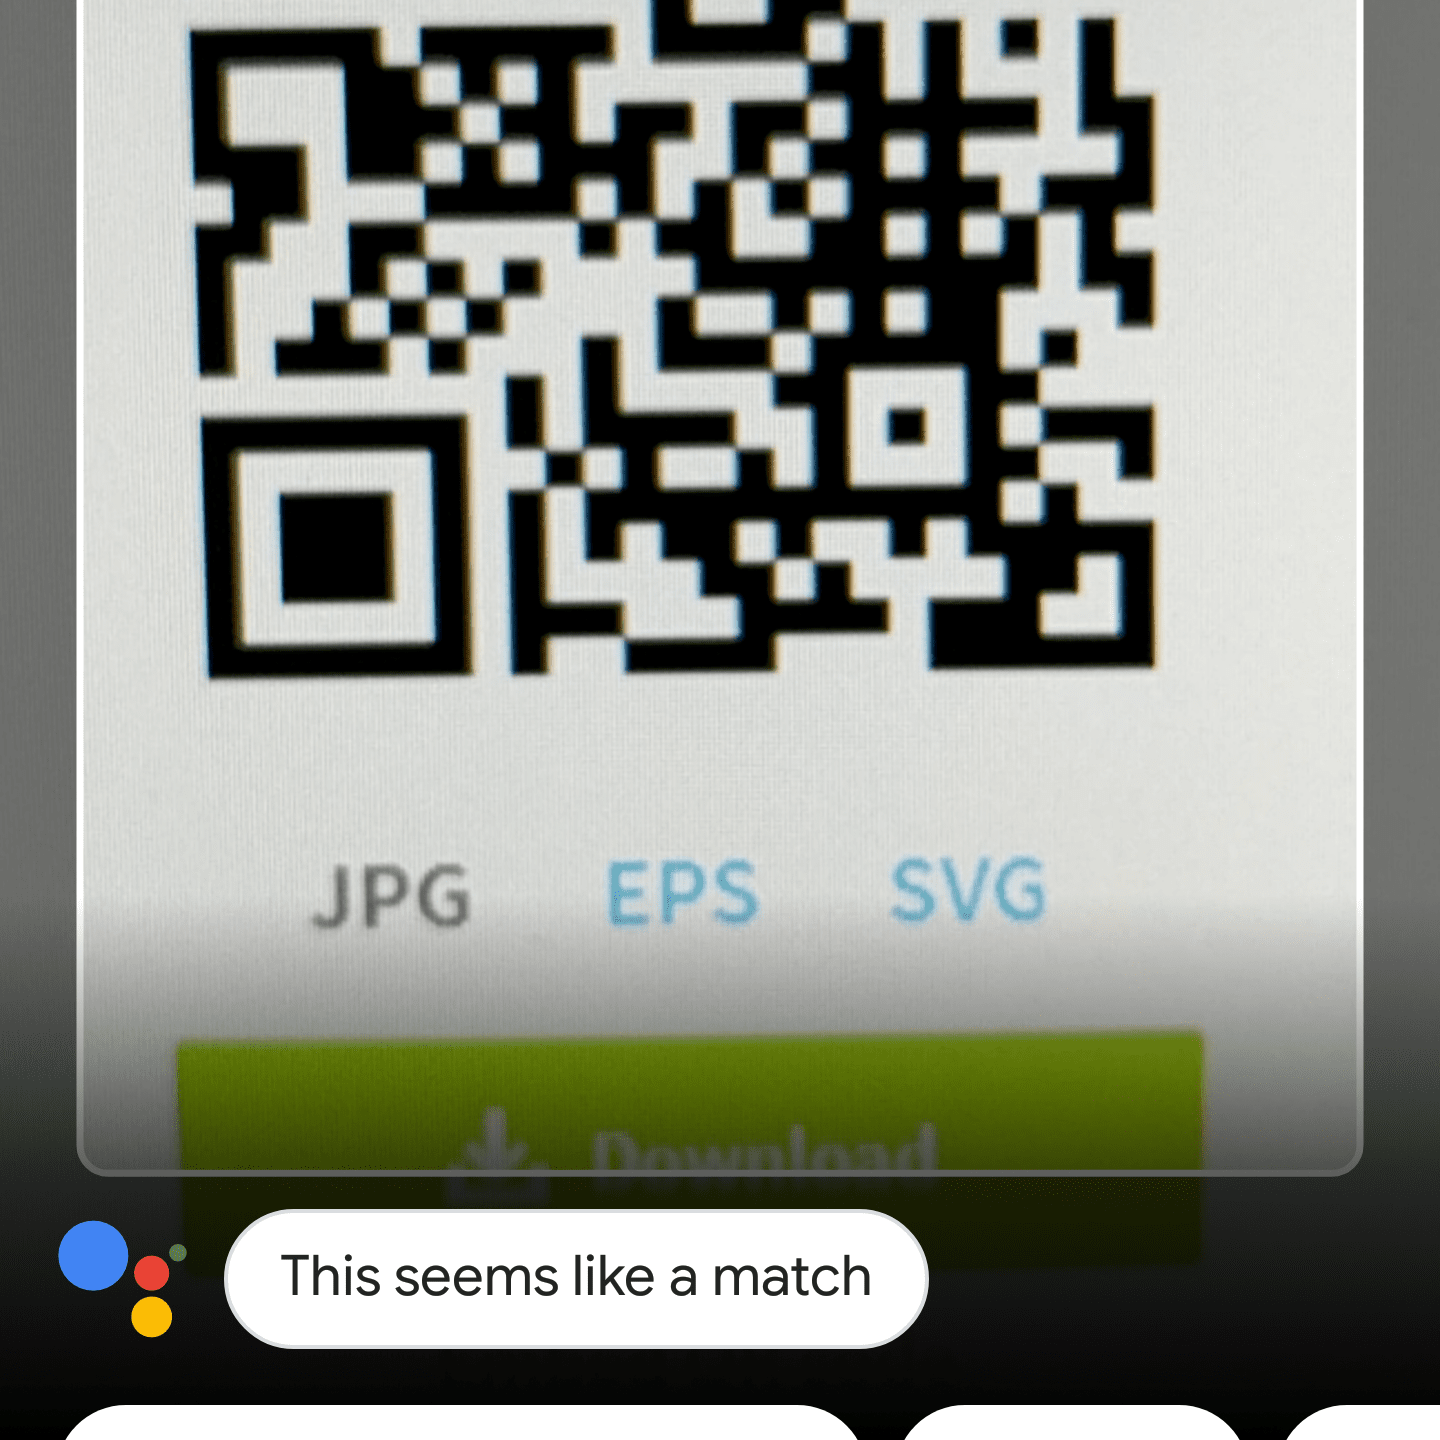 How to Scan QR Codes on Your Phone